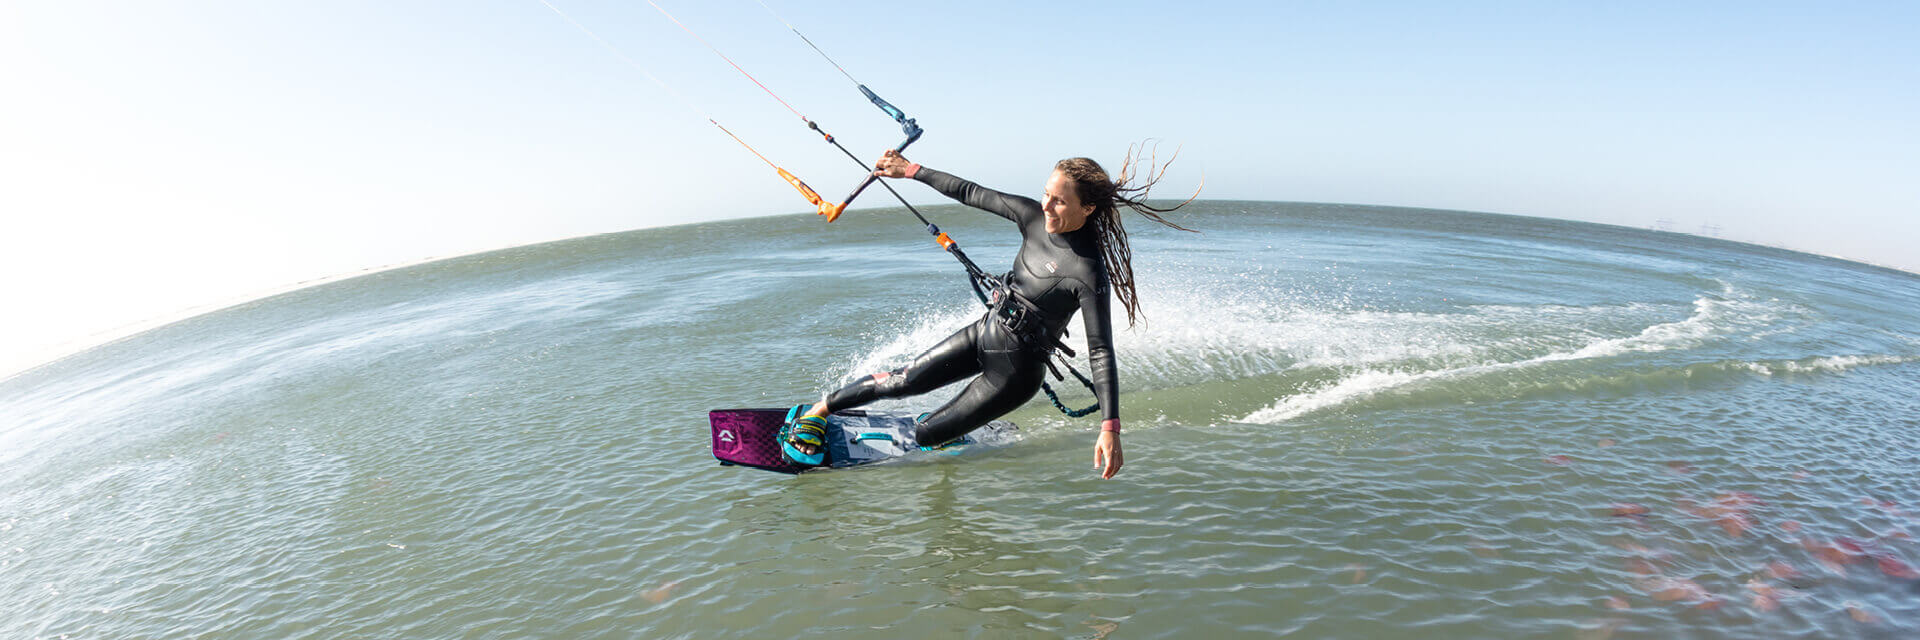 Duotone Kiteboarding Soleil Textreme 2020 Colleen Carroll Header 05